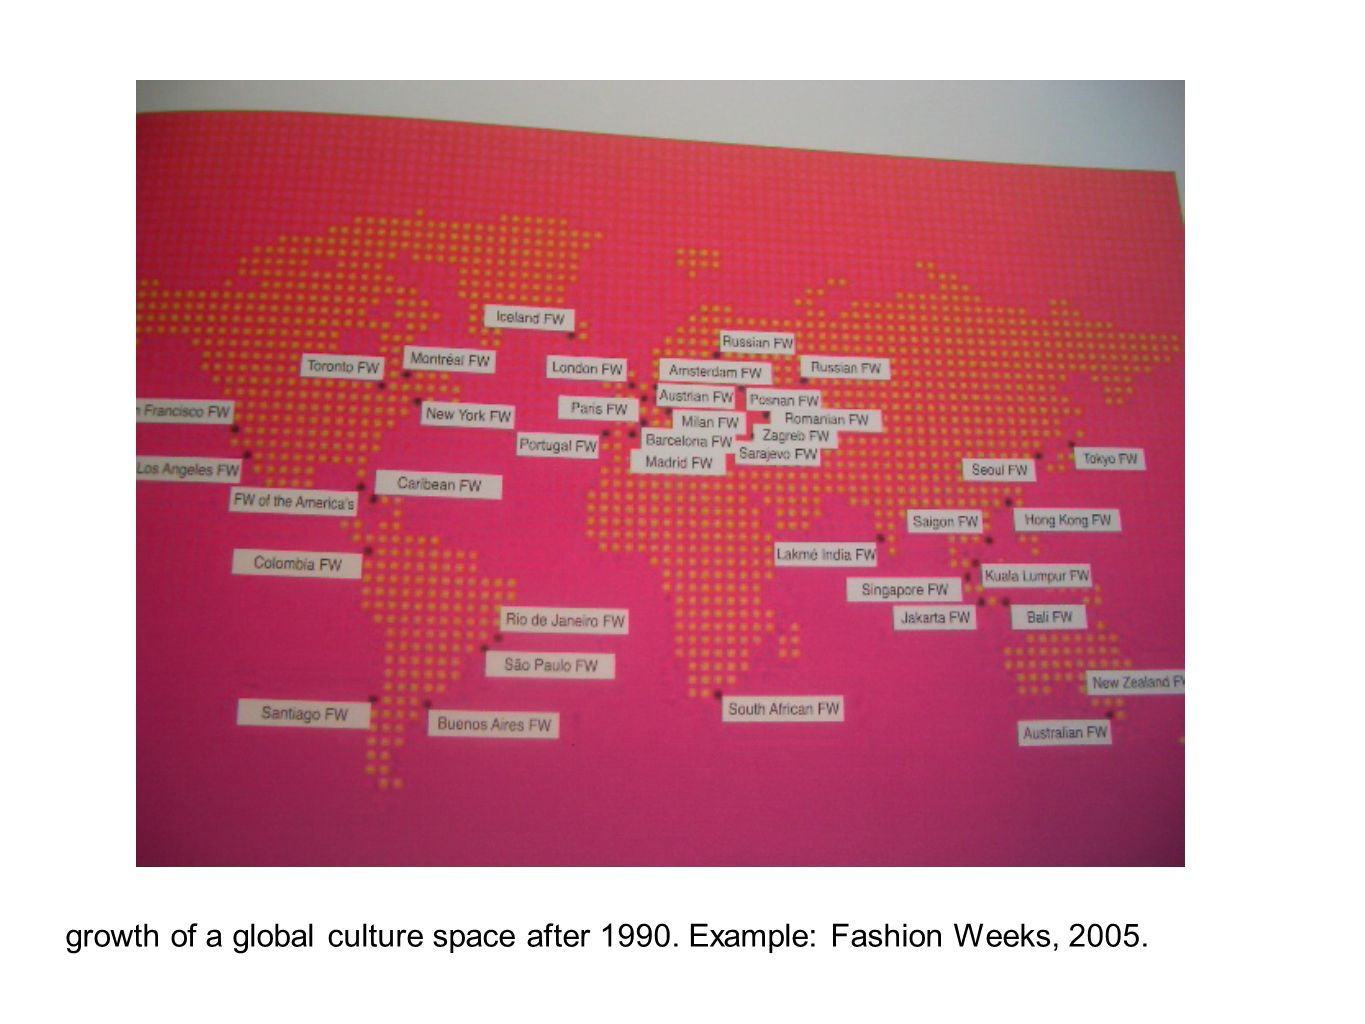 growth of a global culture space after 1990. Example: Fashion Weeks, 2005.